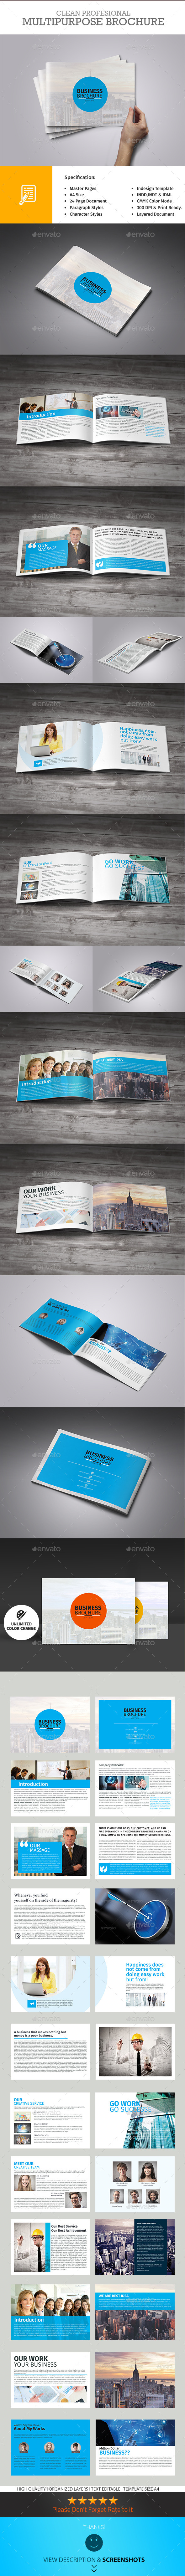 GraphicRiver Business Plan 24 Pages Business Brochure 9961371